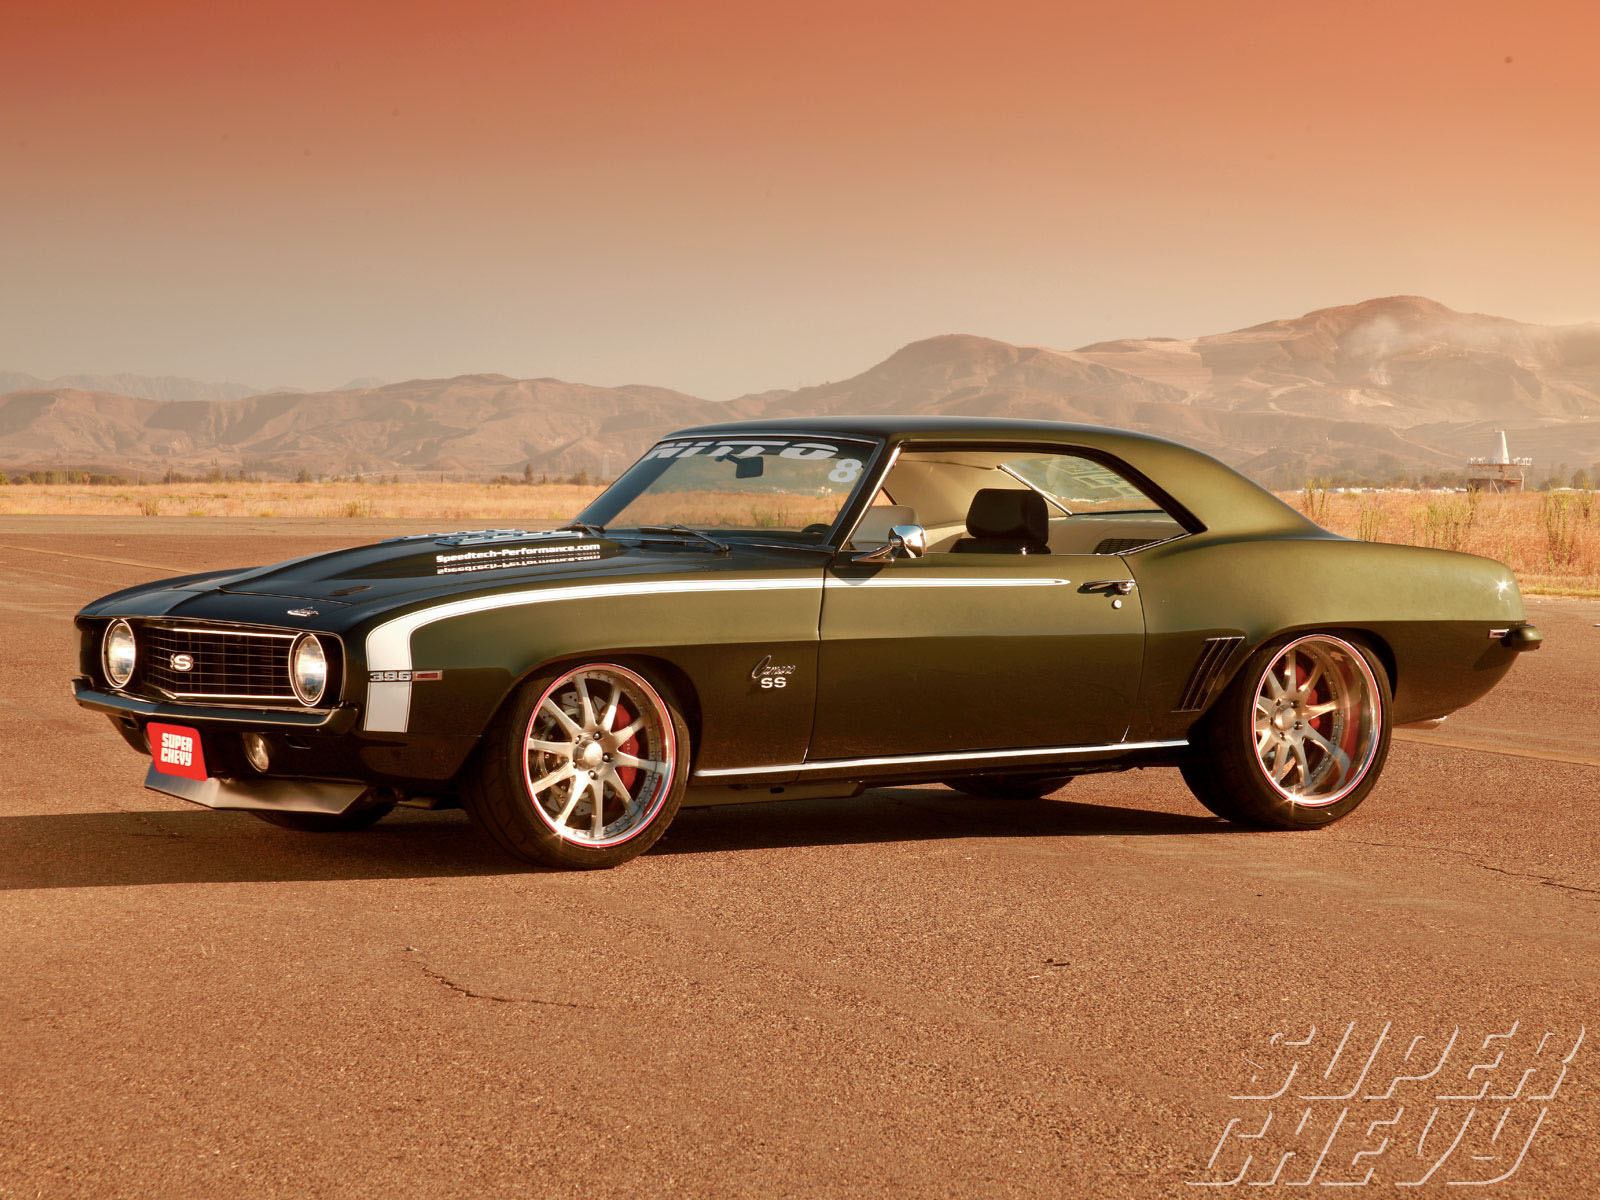 1969 Chevy Camaro SS HD Wallpaper – Image Detail